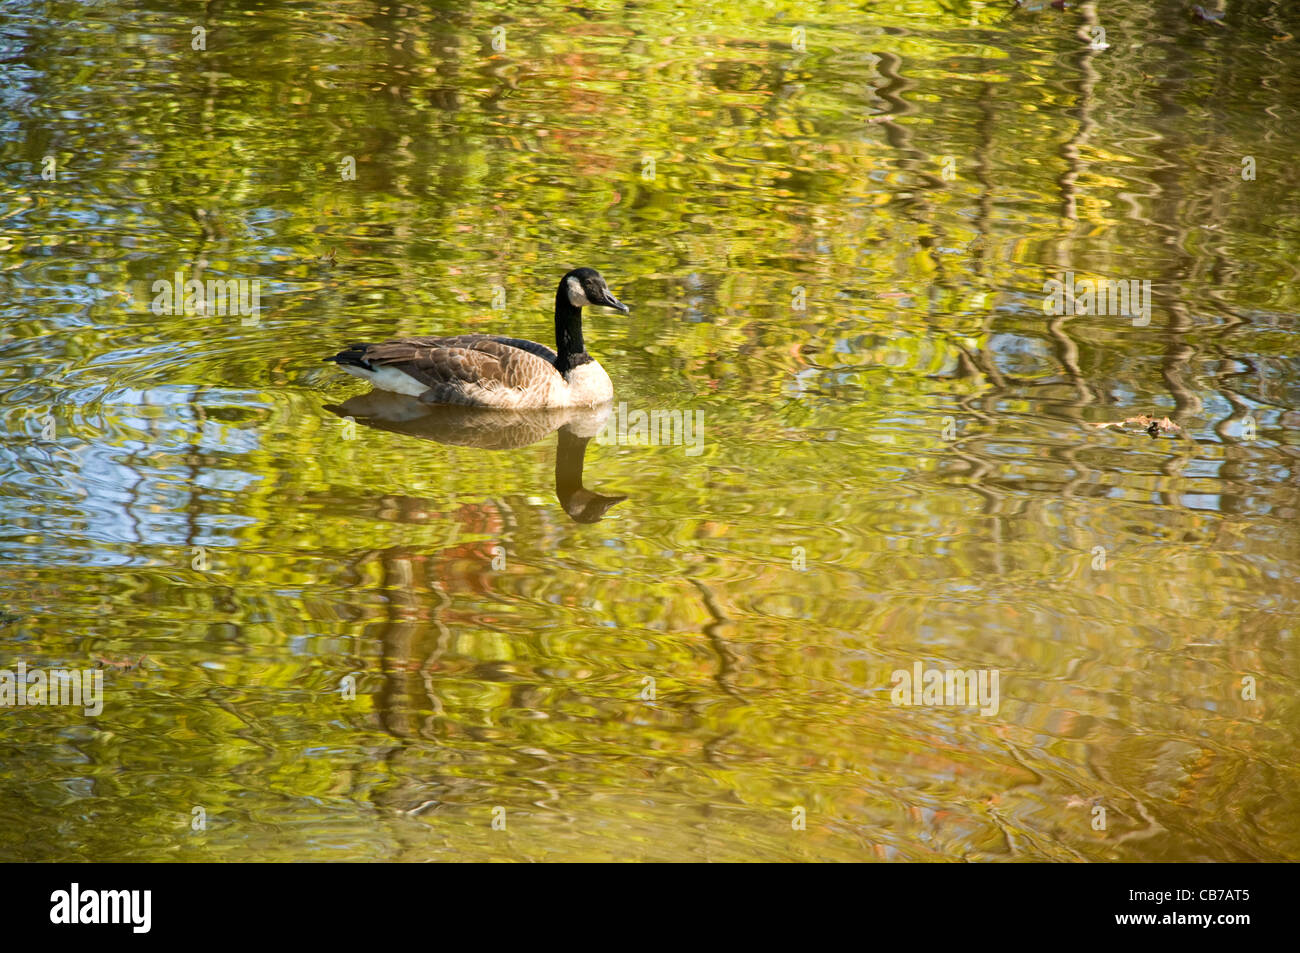 Goose or mallard swimming in a autumn stream with rippled reflections in the water - Stock Image